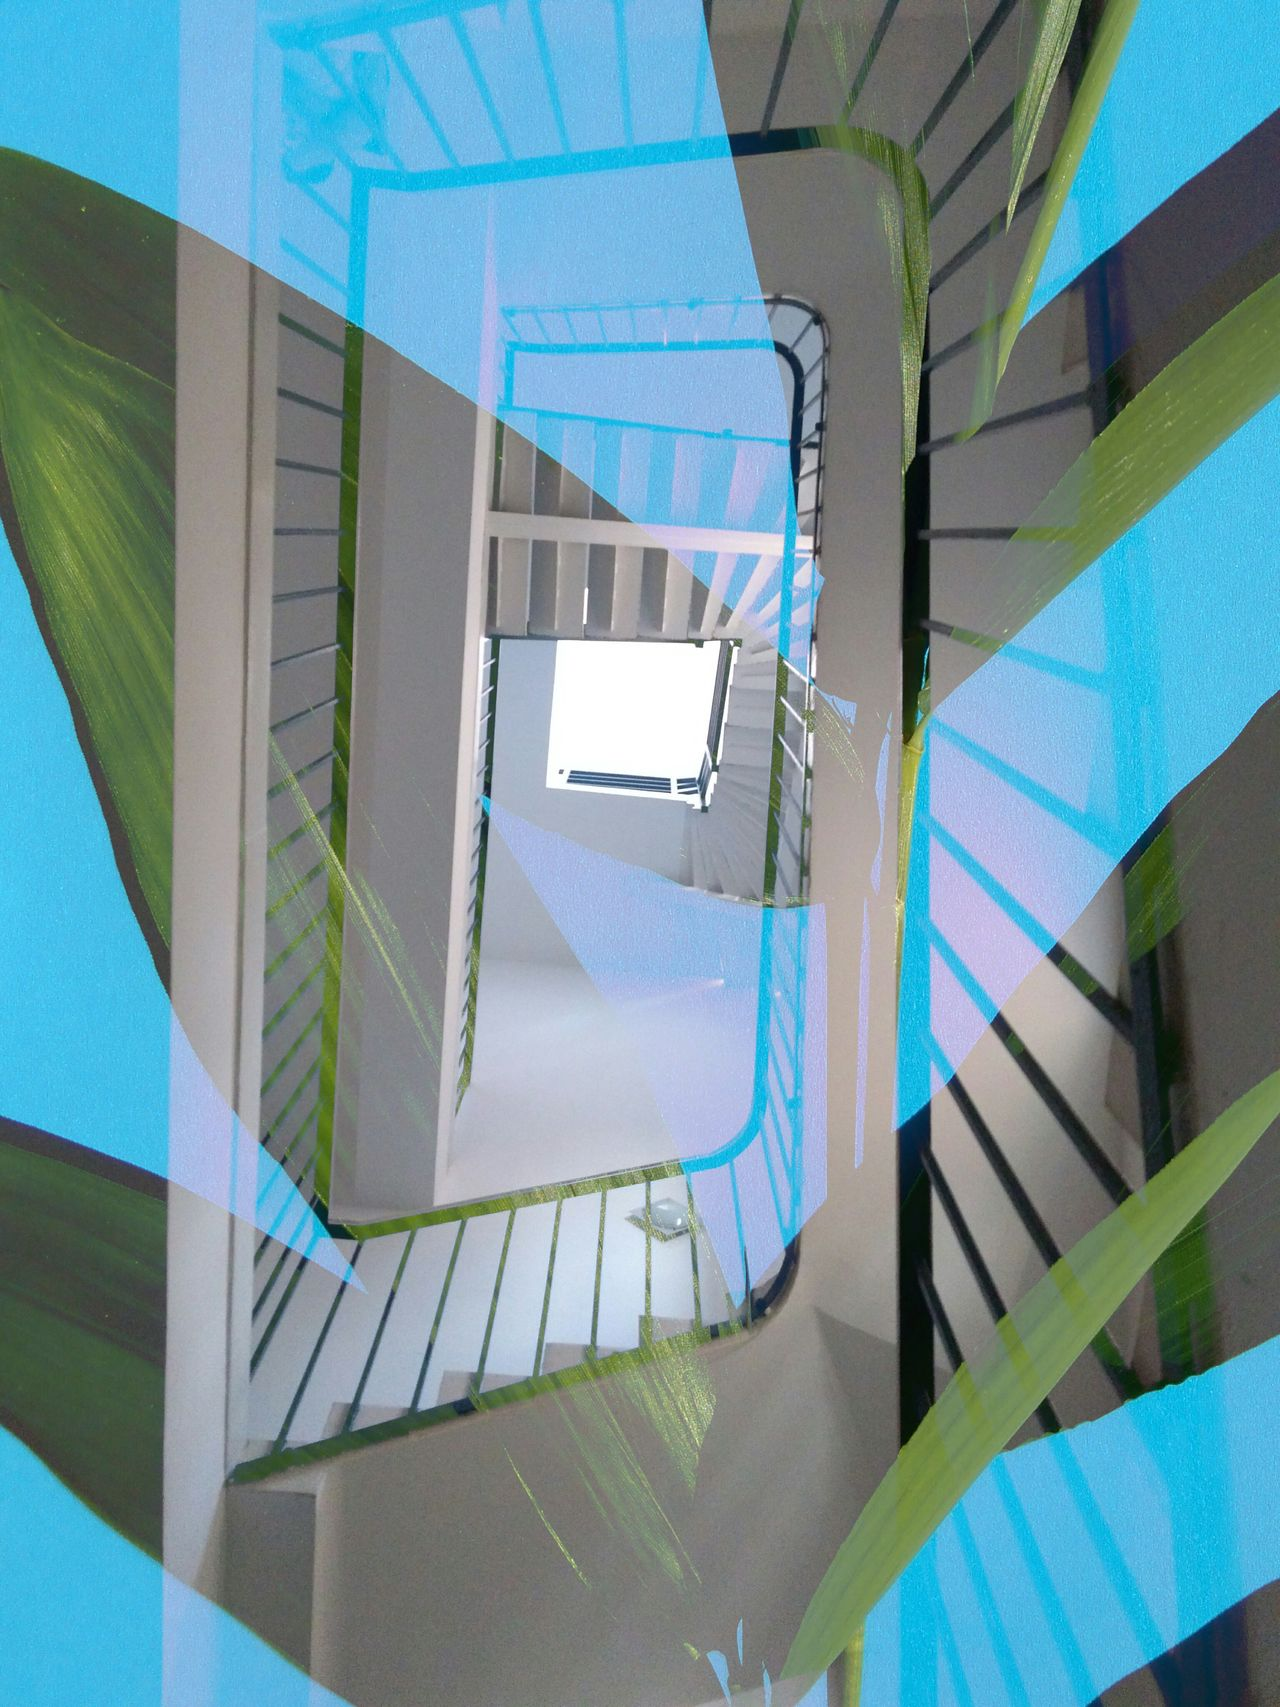 Steps And Staircases Staircase Architecture Steps Spiral Design Railing Built Structure Spiral Staircase Low Angle View Blue Color Blue Background Leaves Natural Vs Artificial Graphic Design Double Exposure Cut And Paste Collage Spiral Staircase